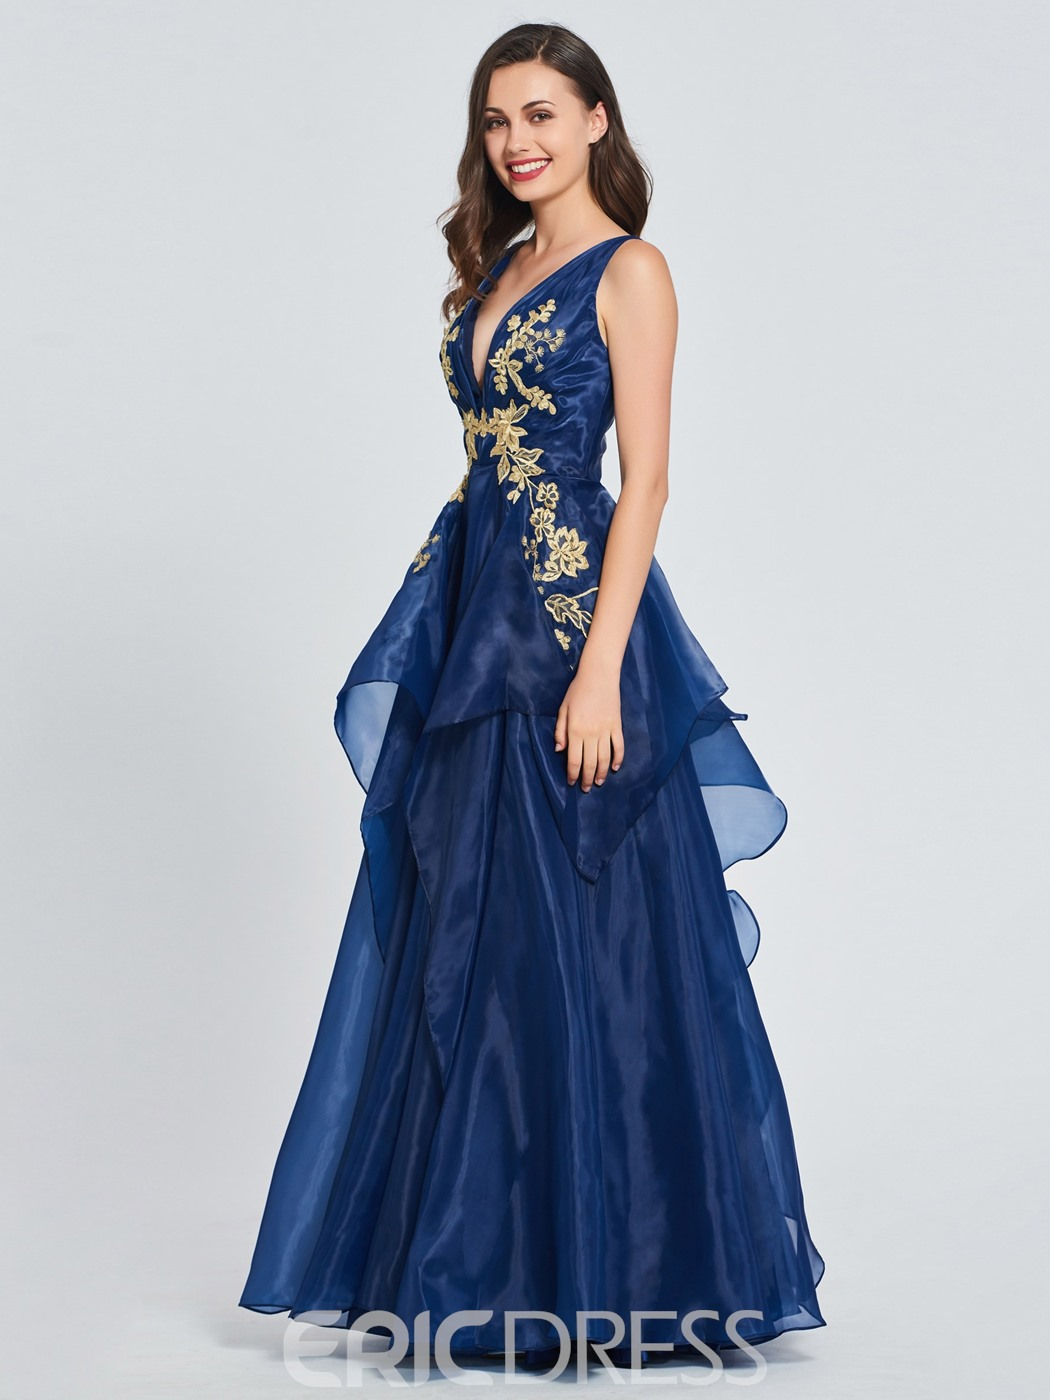 Ericdress V-Neck Appliques A-Line Prom Dress